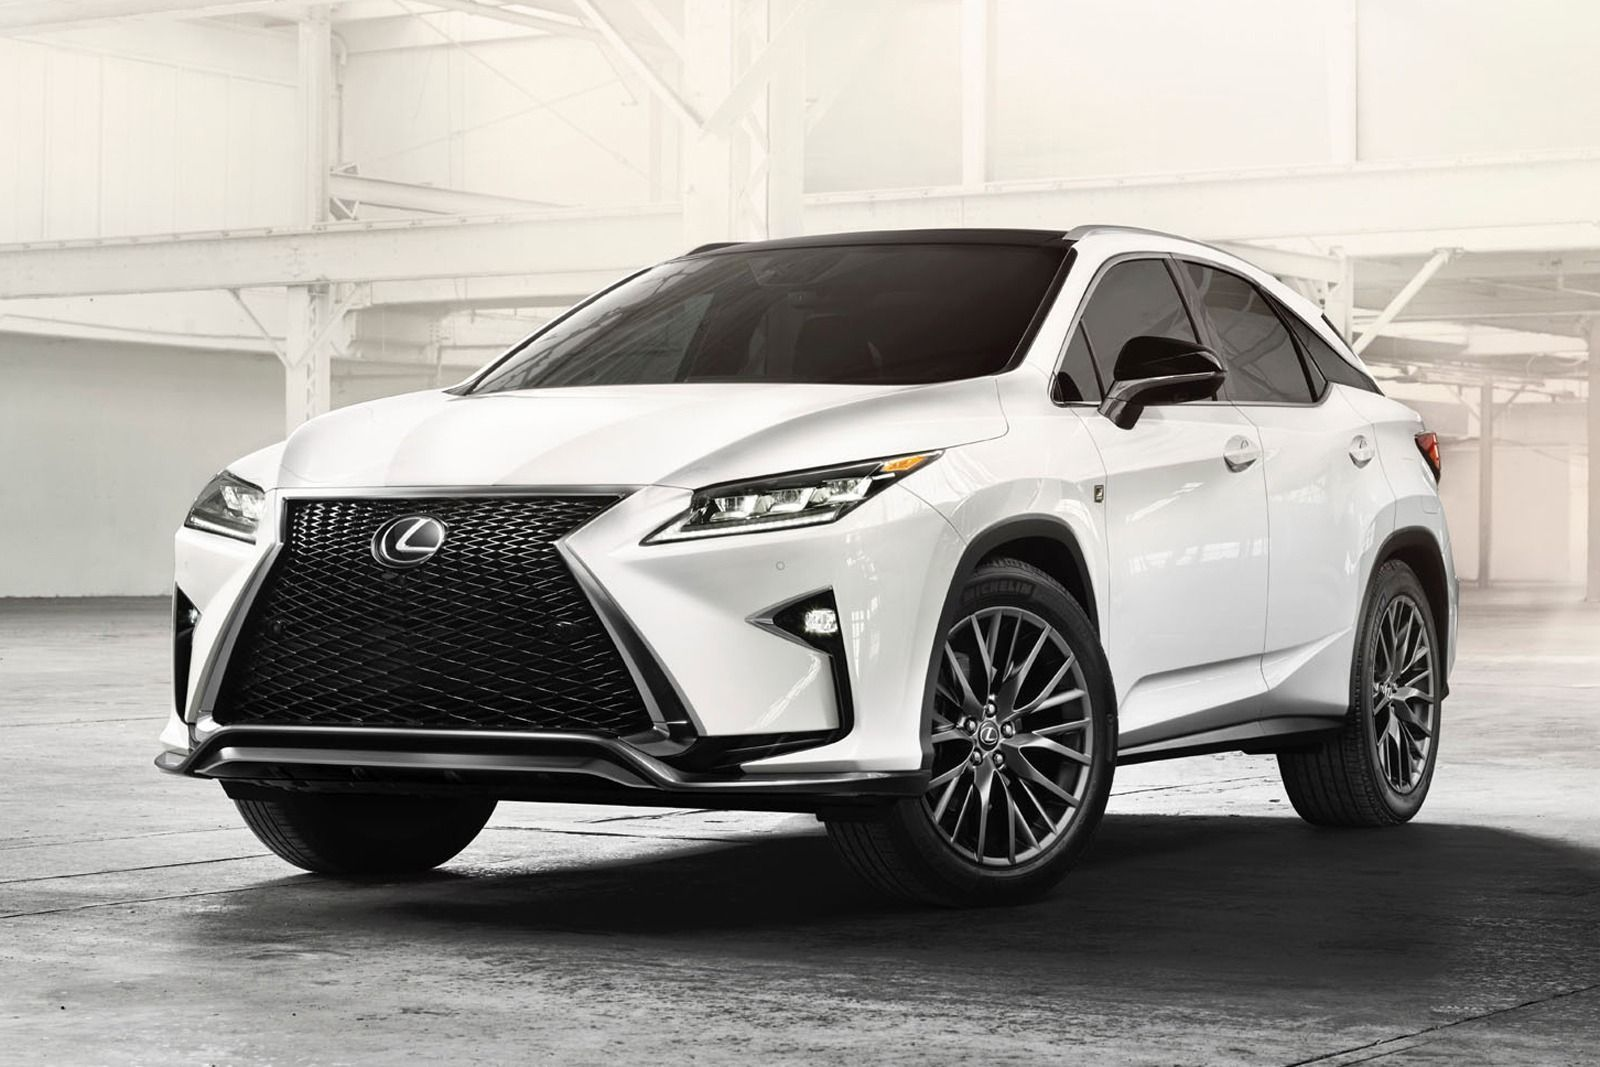 Best 25 lexus rx 350 price ideas on pinterest lexus suv price lexus rx 350 and lexus 350 price